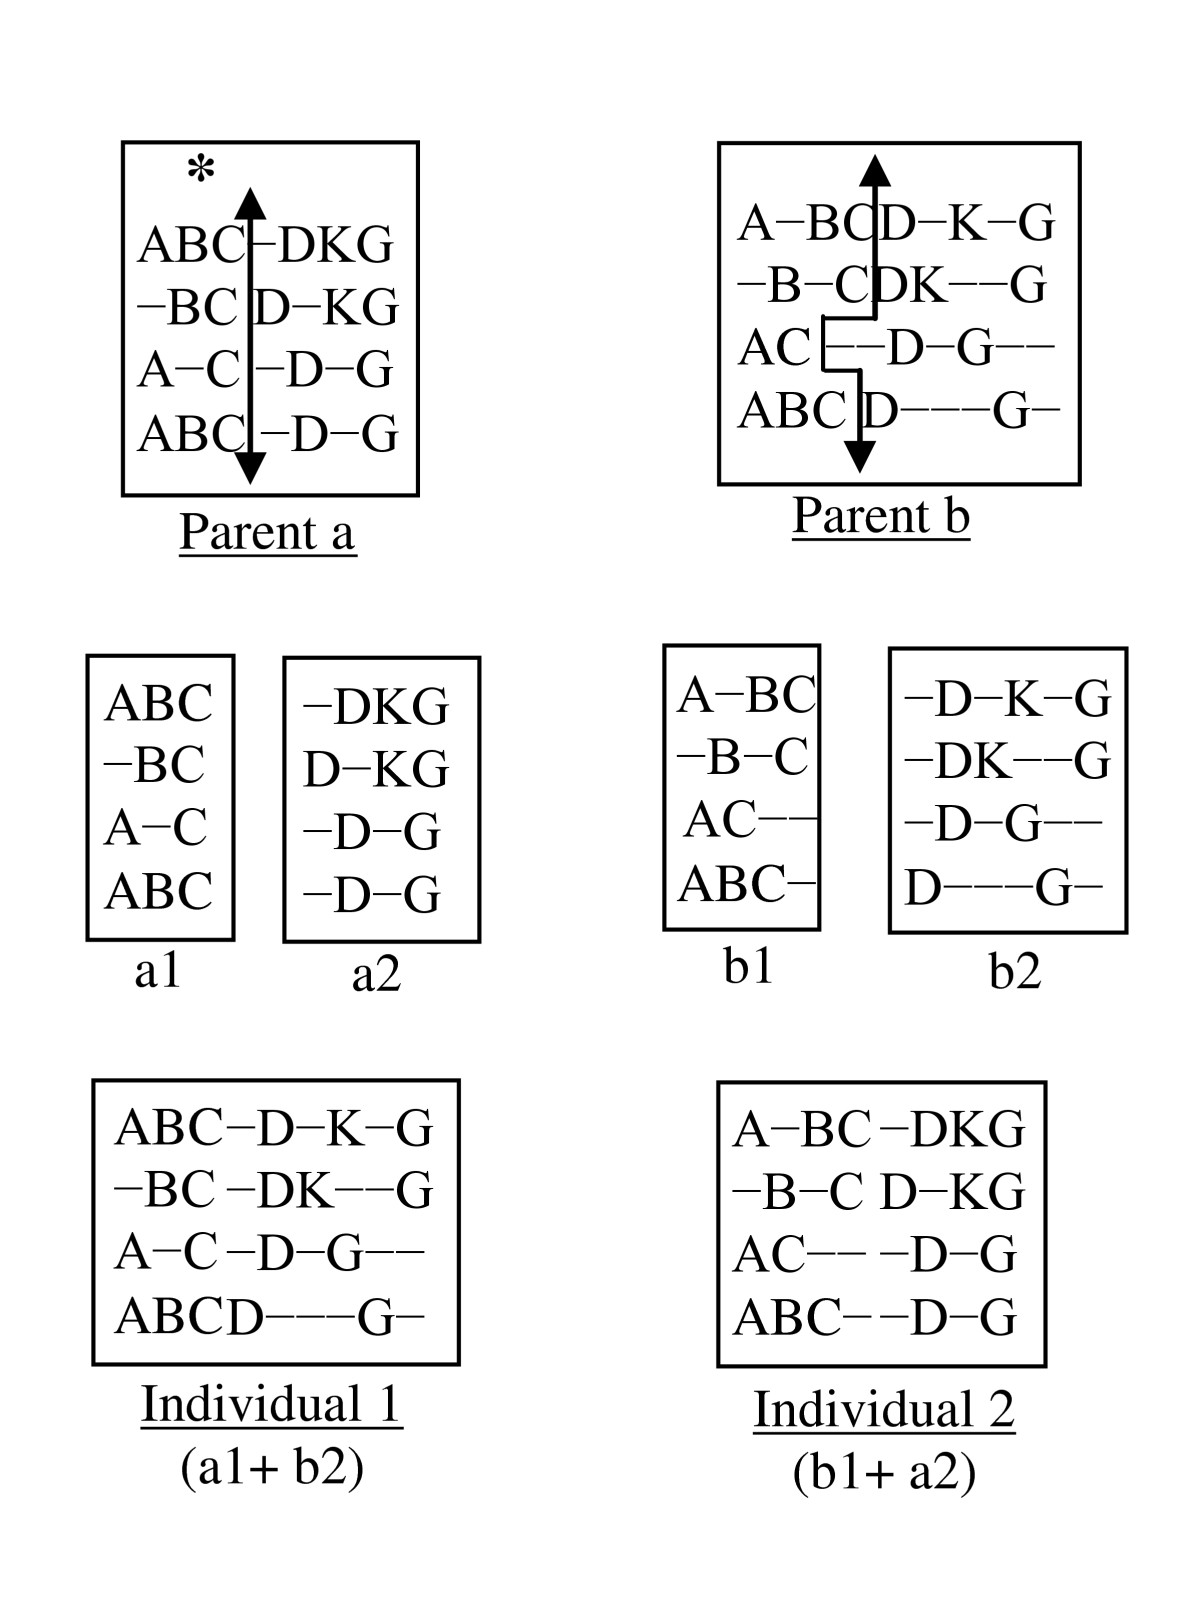 https://static-content.springer.com/image/art%3A10.1186%2F1471-2105-12-353/MediaObjects/12859_2011_Article_4782_Fig5_HTML.jpg